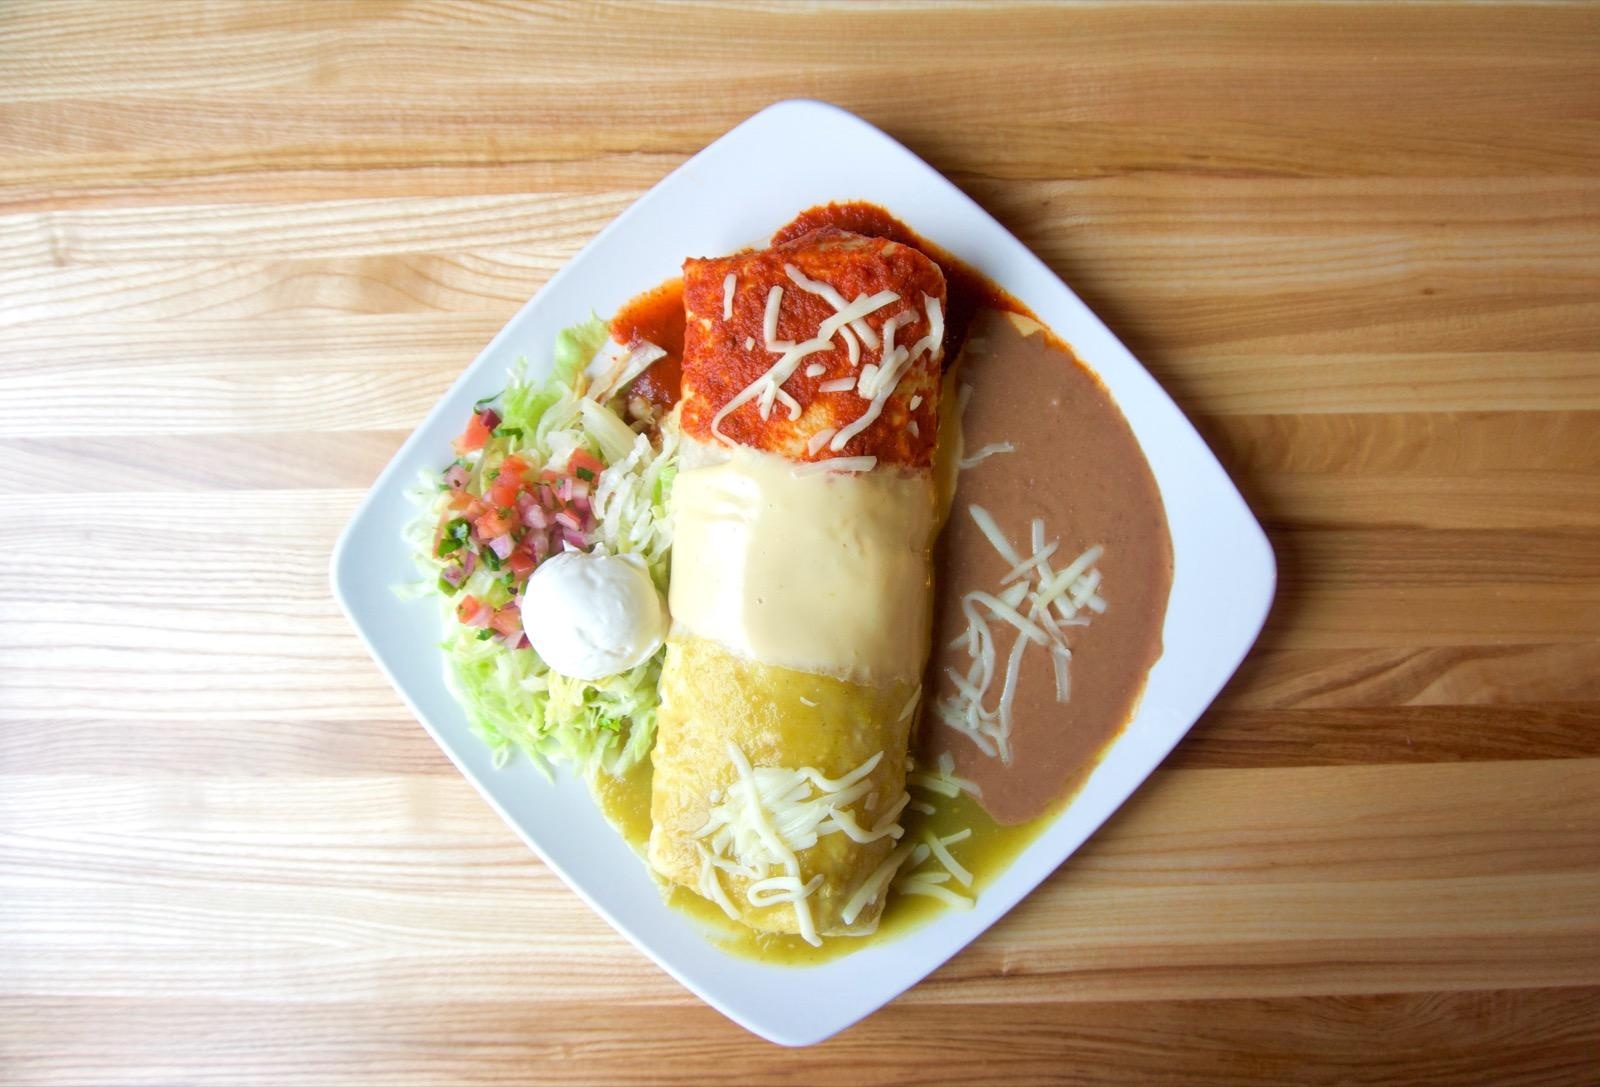 <p>Burrito Mexicano: stuffed with grilled chicken, chorizo, grilled onions, jalapeno peppers, tomato, and cheese, topped with green sauce, cheese sauce, and red sauce, and served with beans, rice, lettuce, pico de gallo, and sour cream / Image: Brian Planalp // Published: 1.29.18</p>